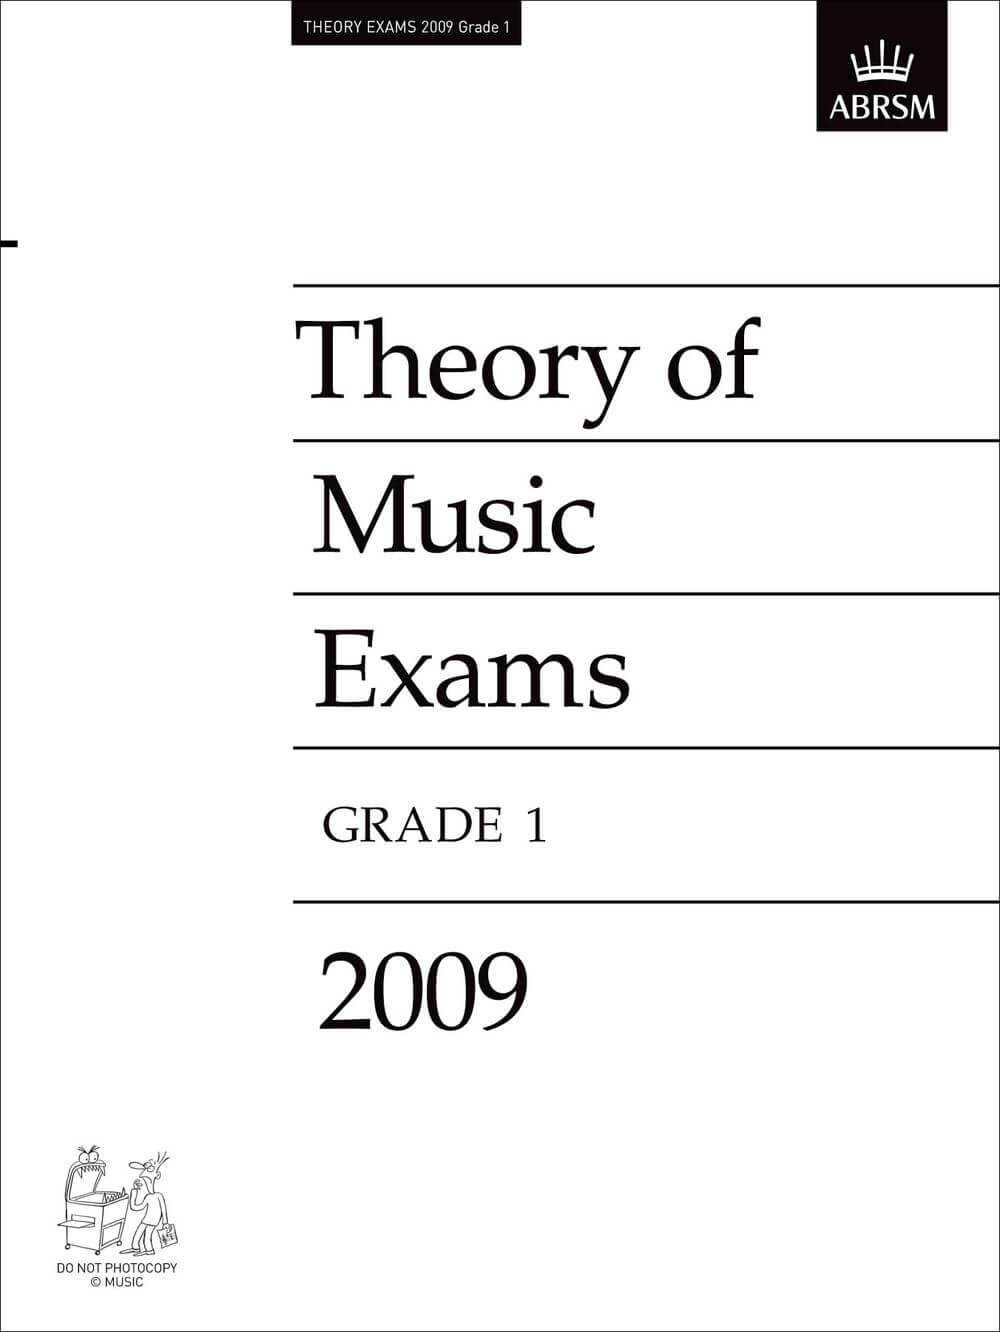 Theory of Music Exams, Grade 1, 2009